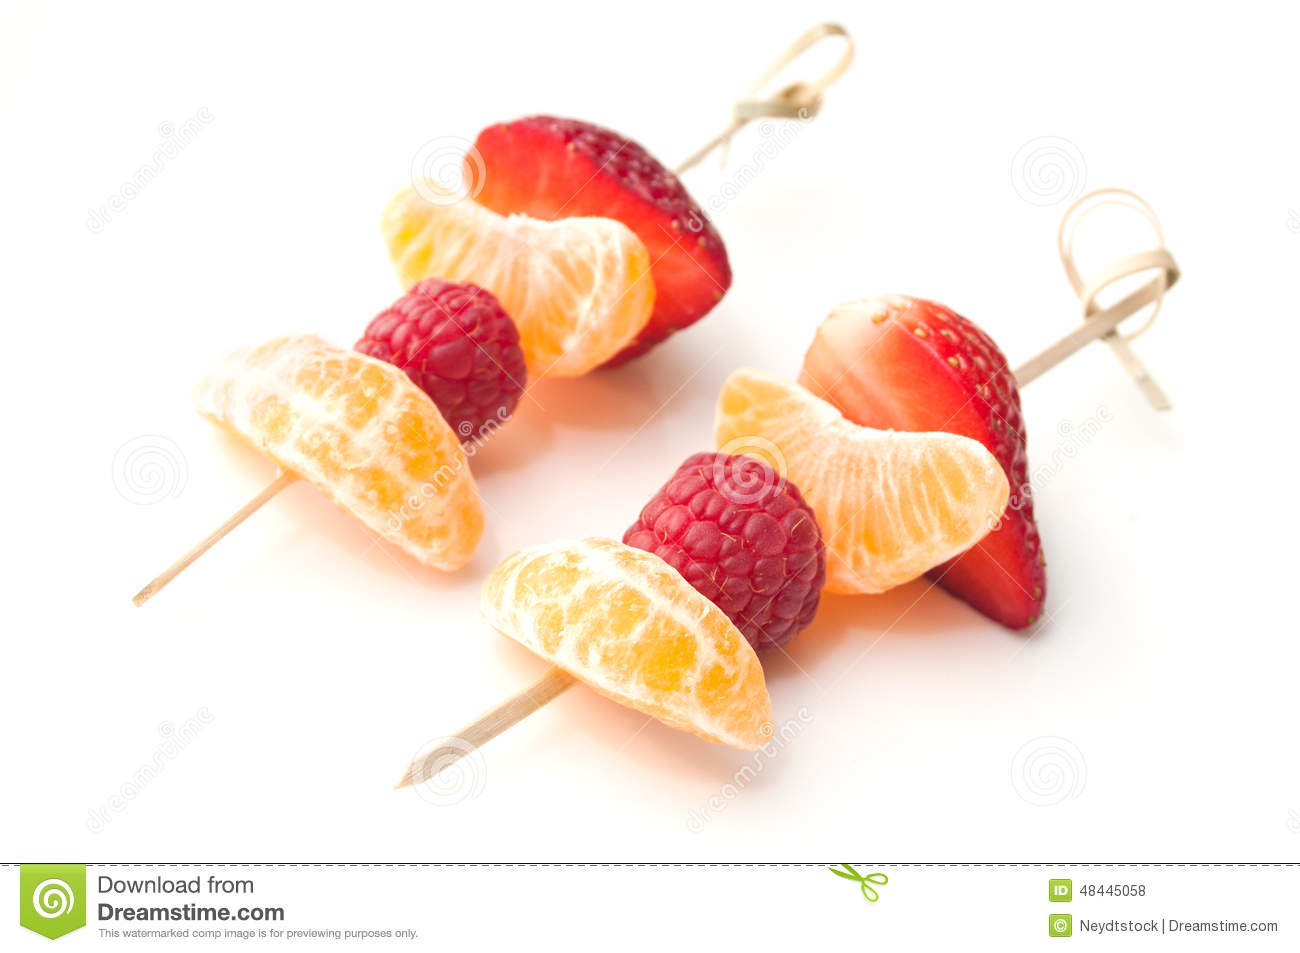 Pr sentation de brochette de fruits photo stock image 48445058 - Presentation de brochette de fruits ...